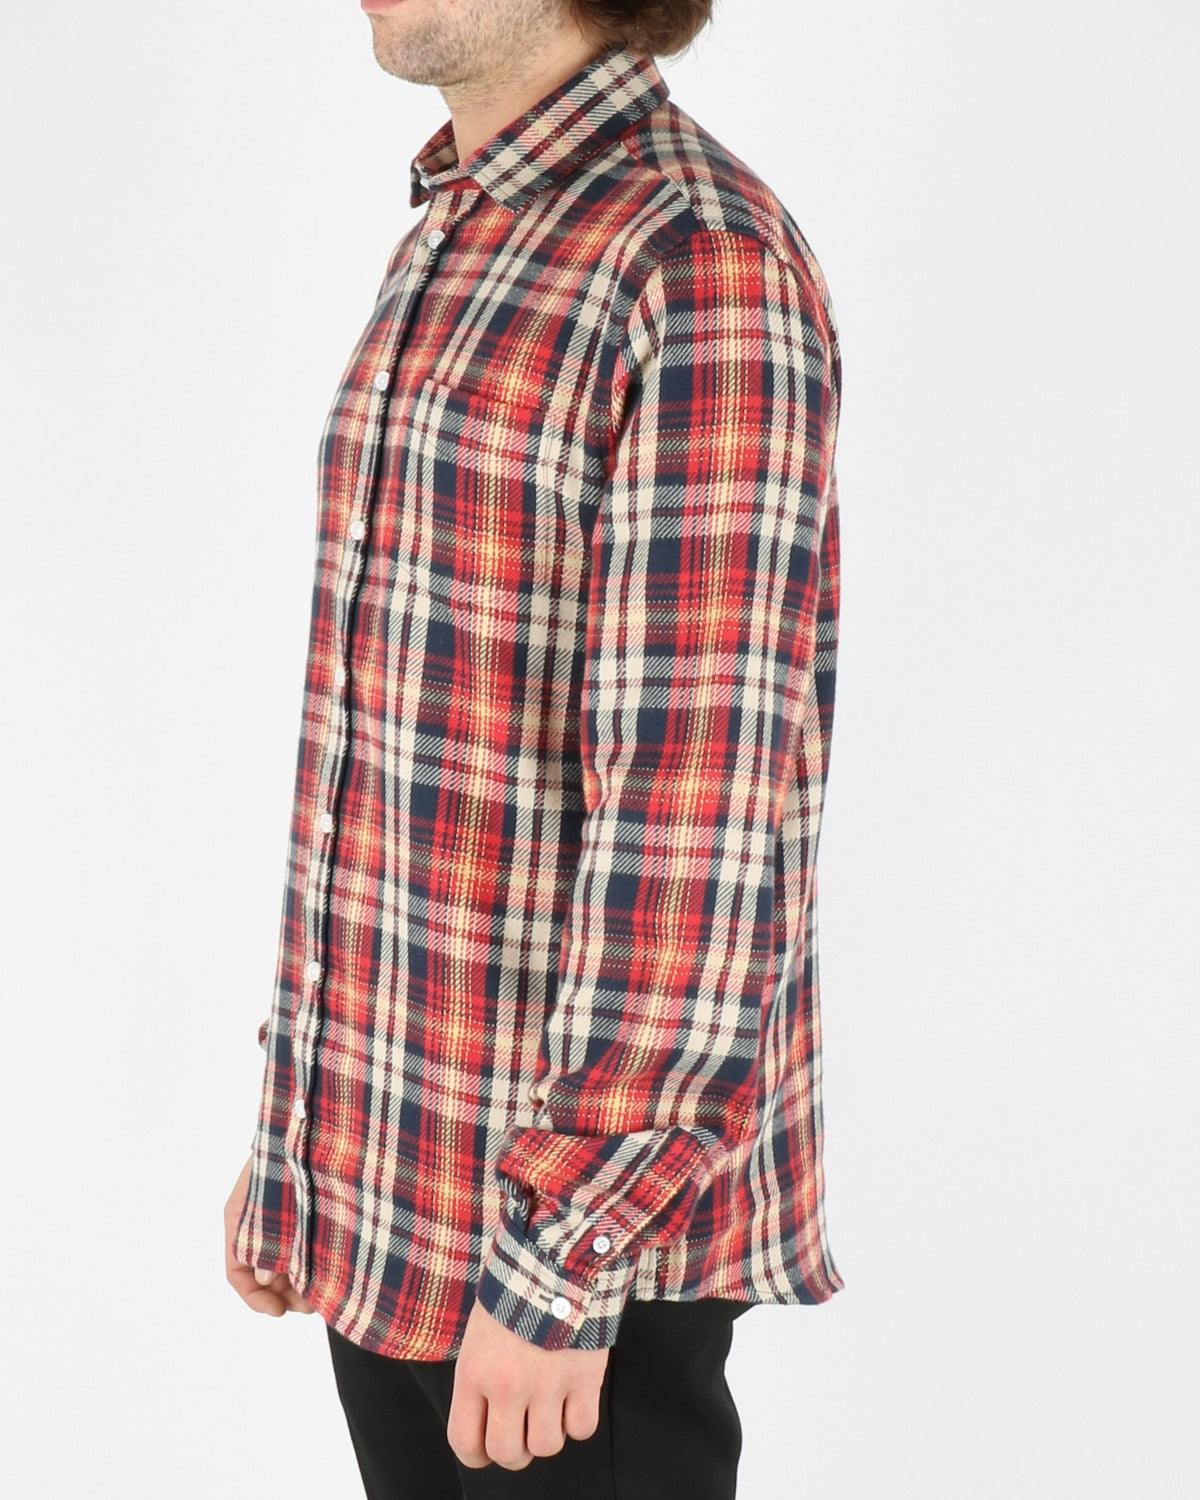 libertine libertine_lynch shirt_red navy check_2_3